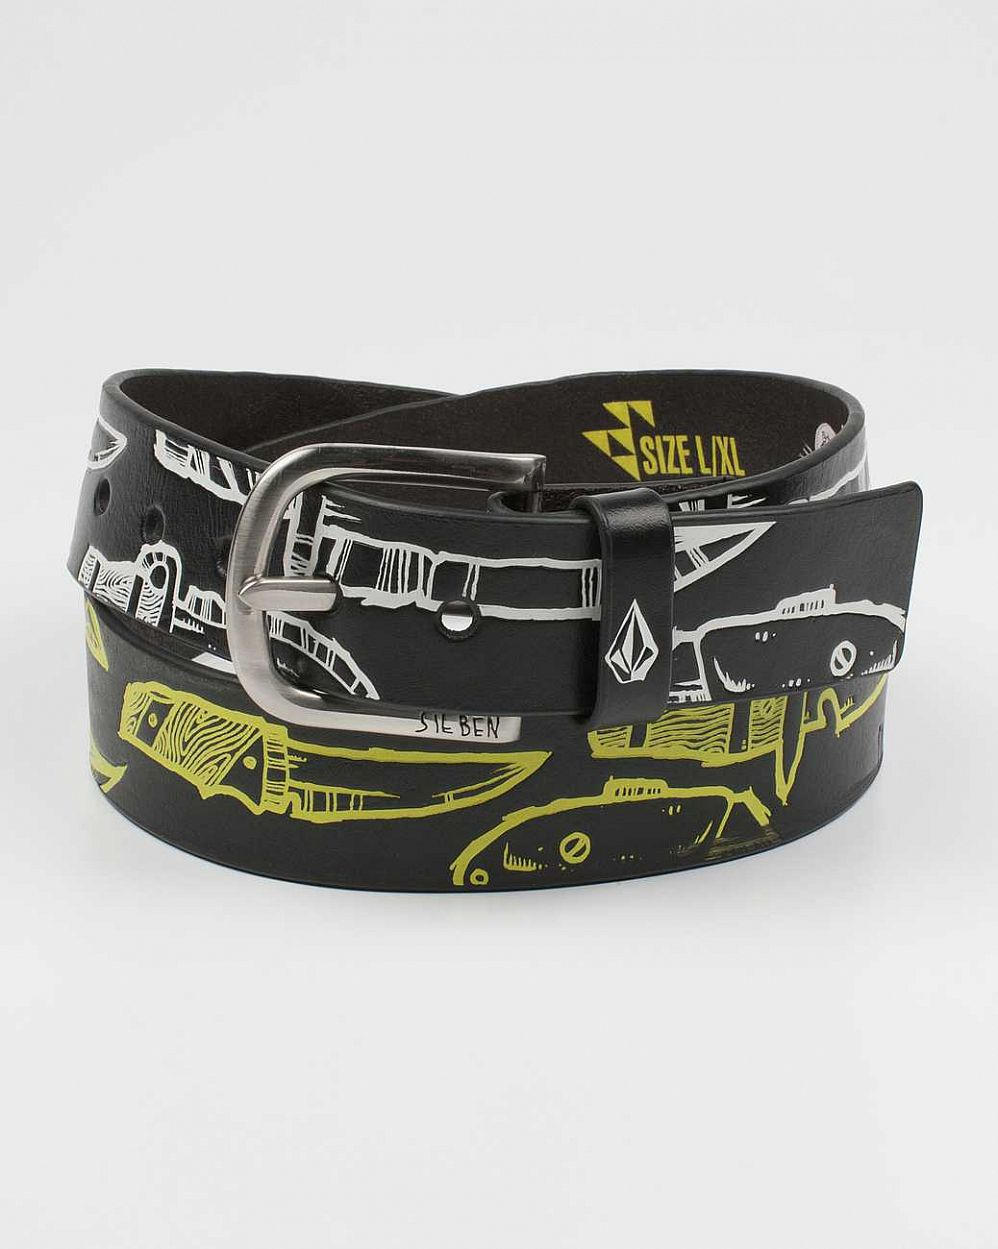 Ремень Volcom Fa M Sieben Leather Belt Black отзывы